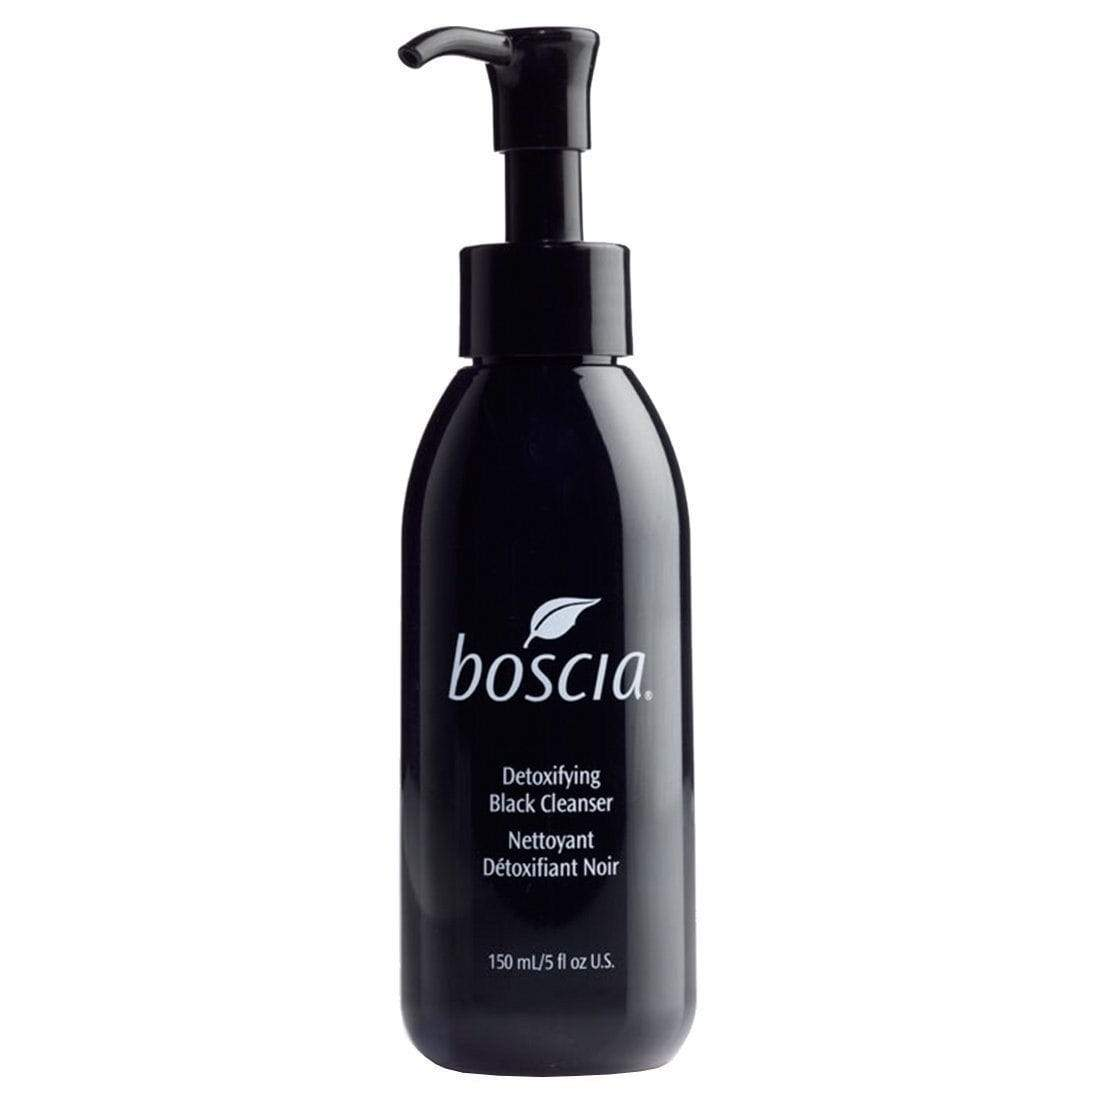 Boscia Skin Care Boscia Detoxifying Black Cleanser (150ml | 5.fl oz)